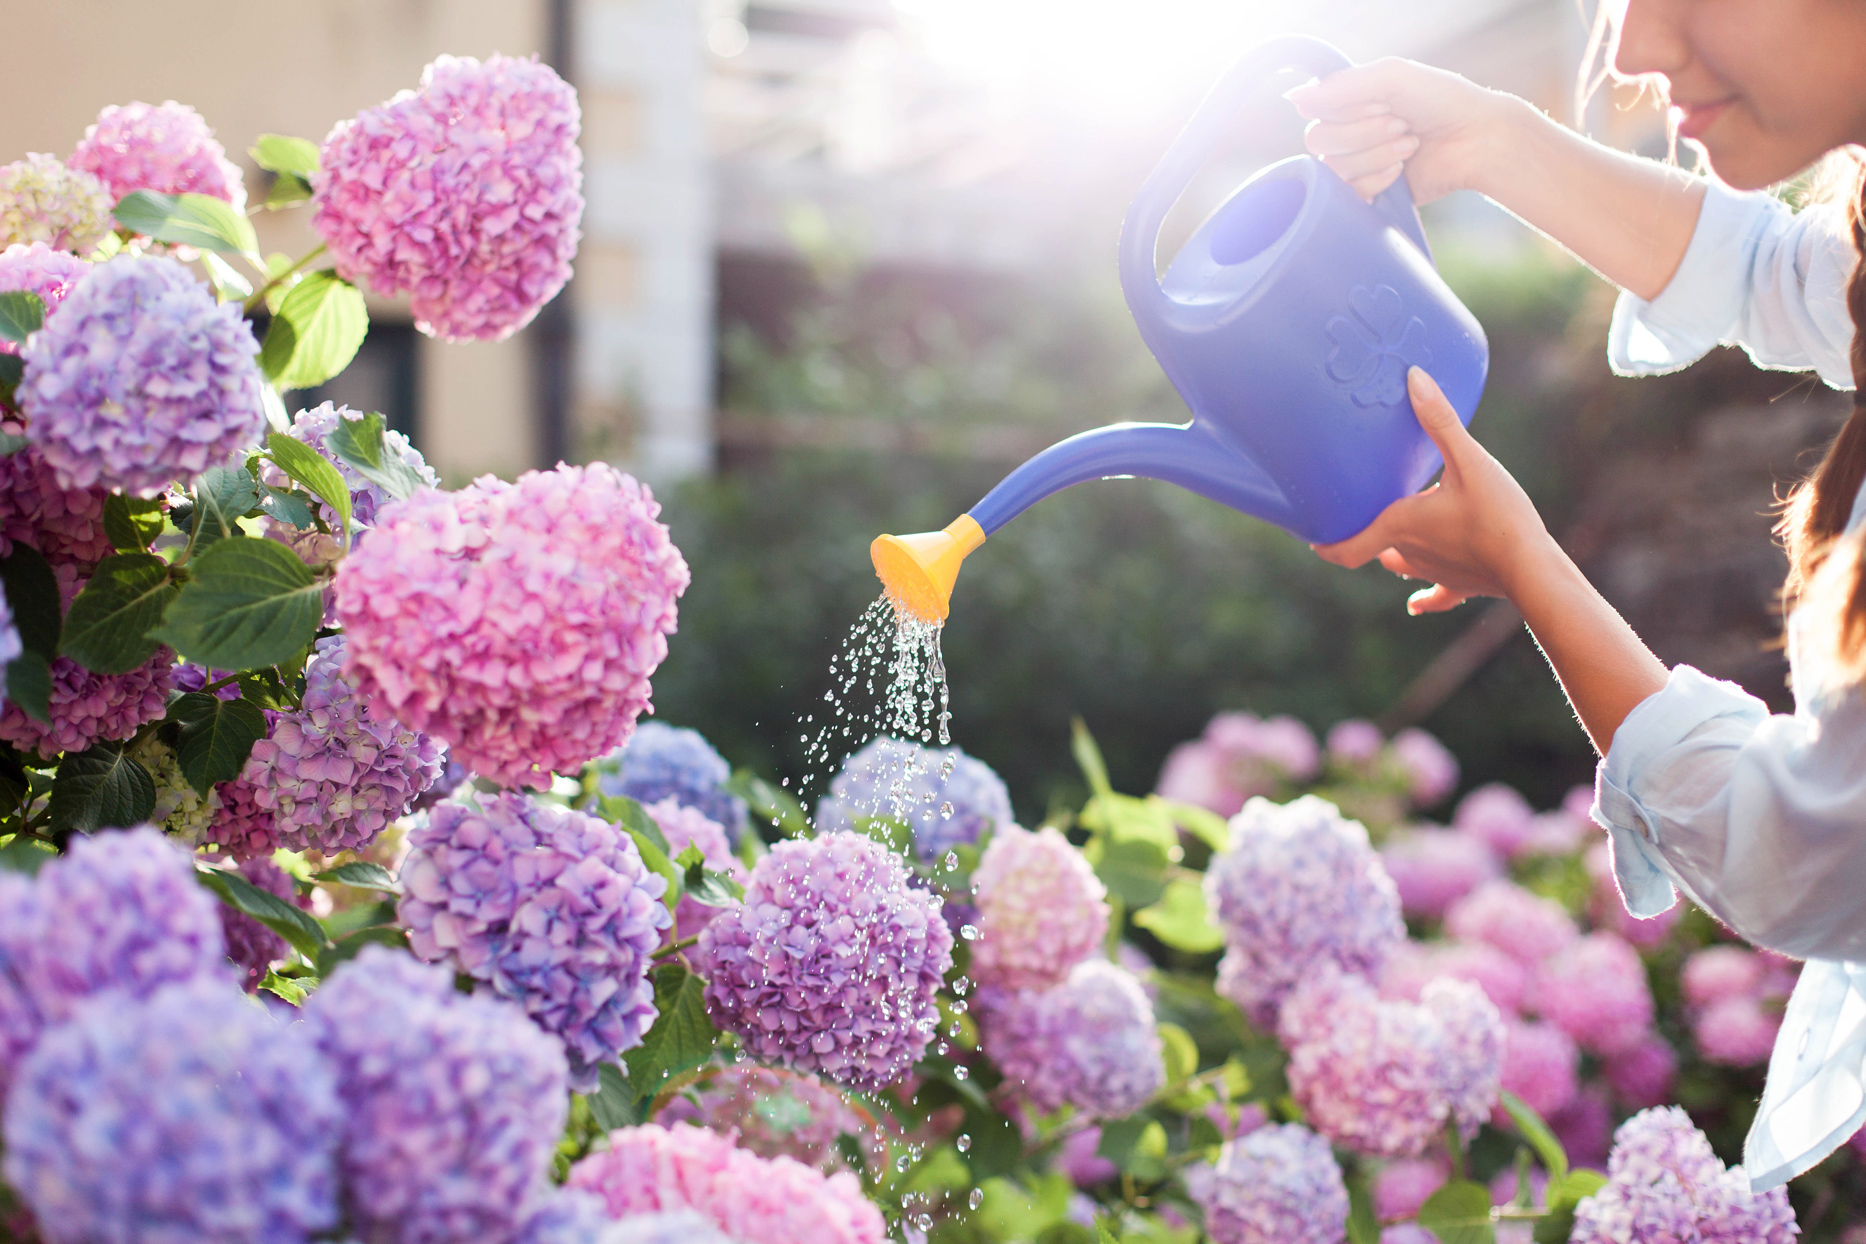 woman watering hydrangeas with purple watering can